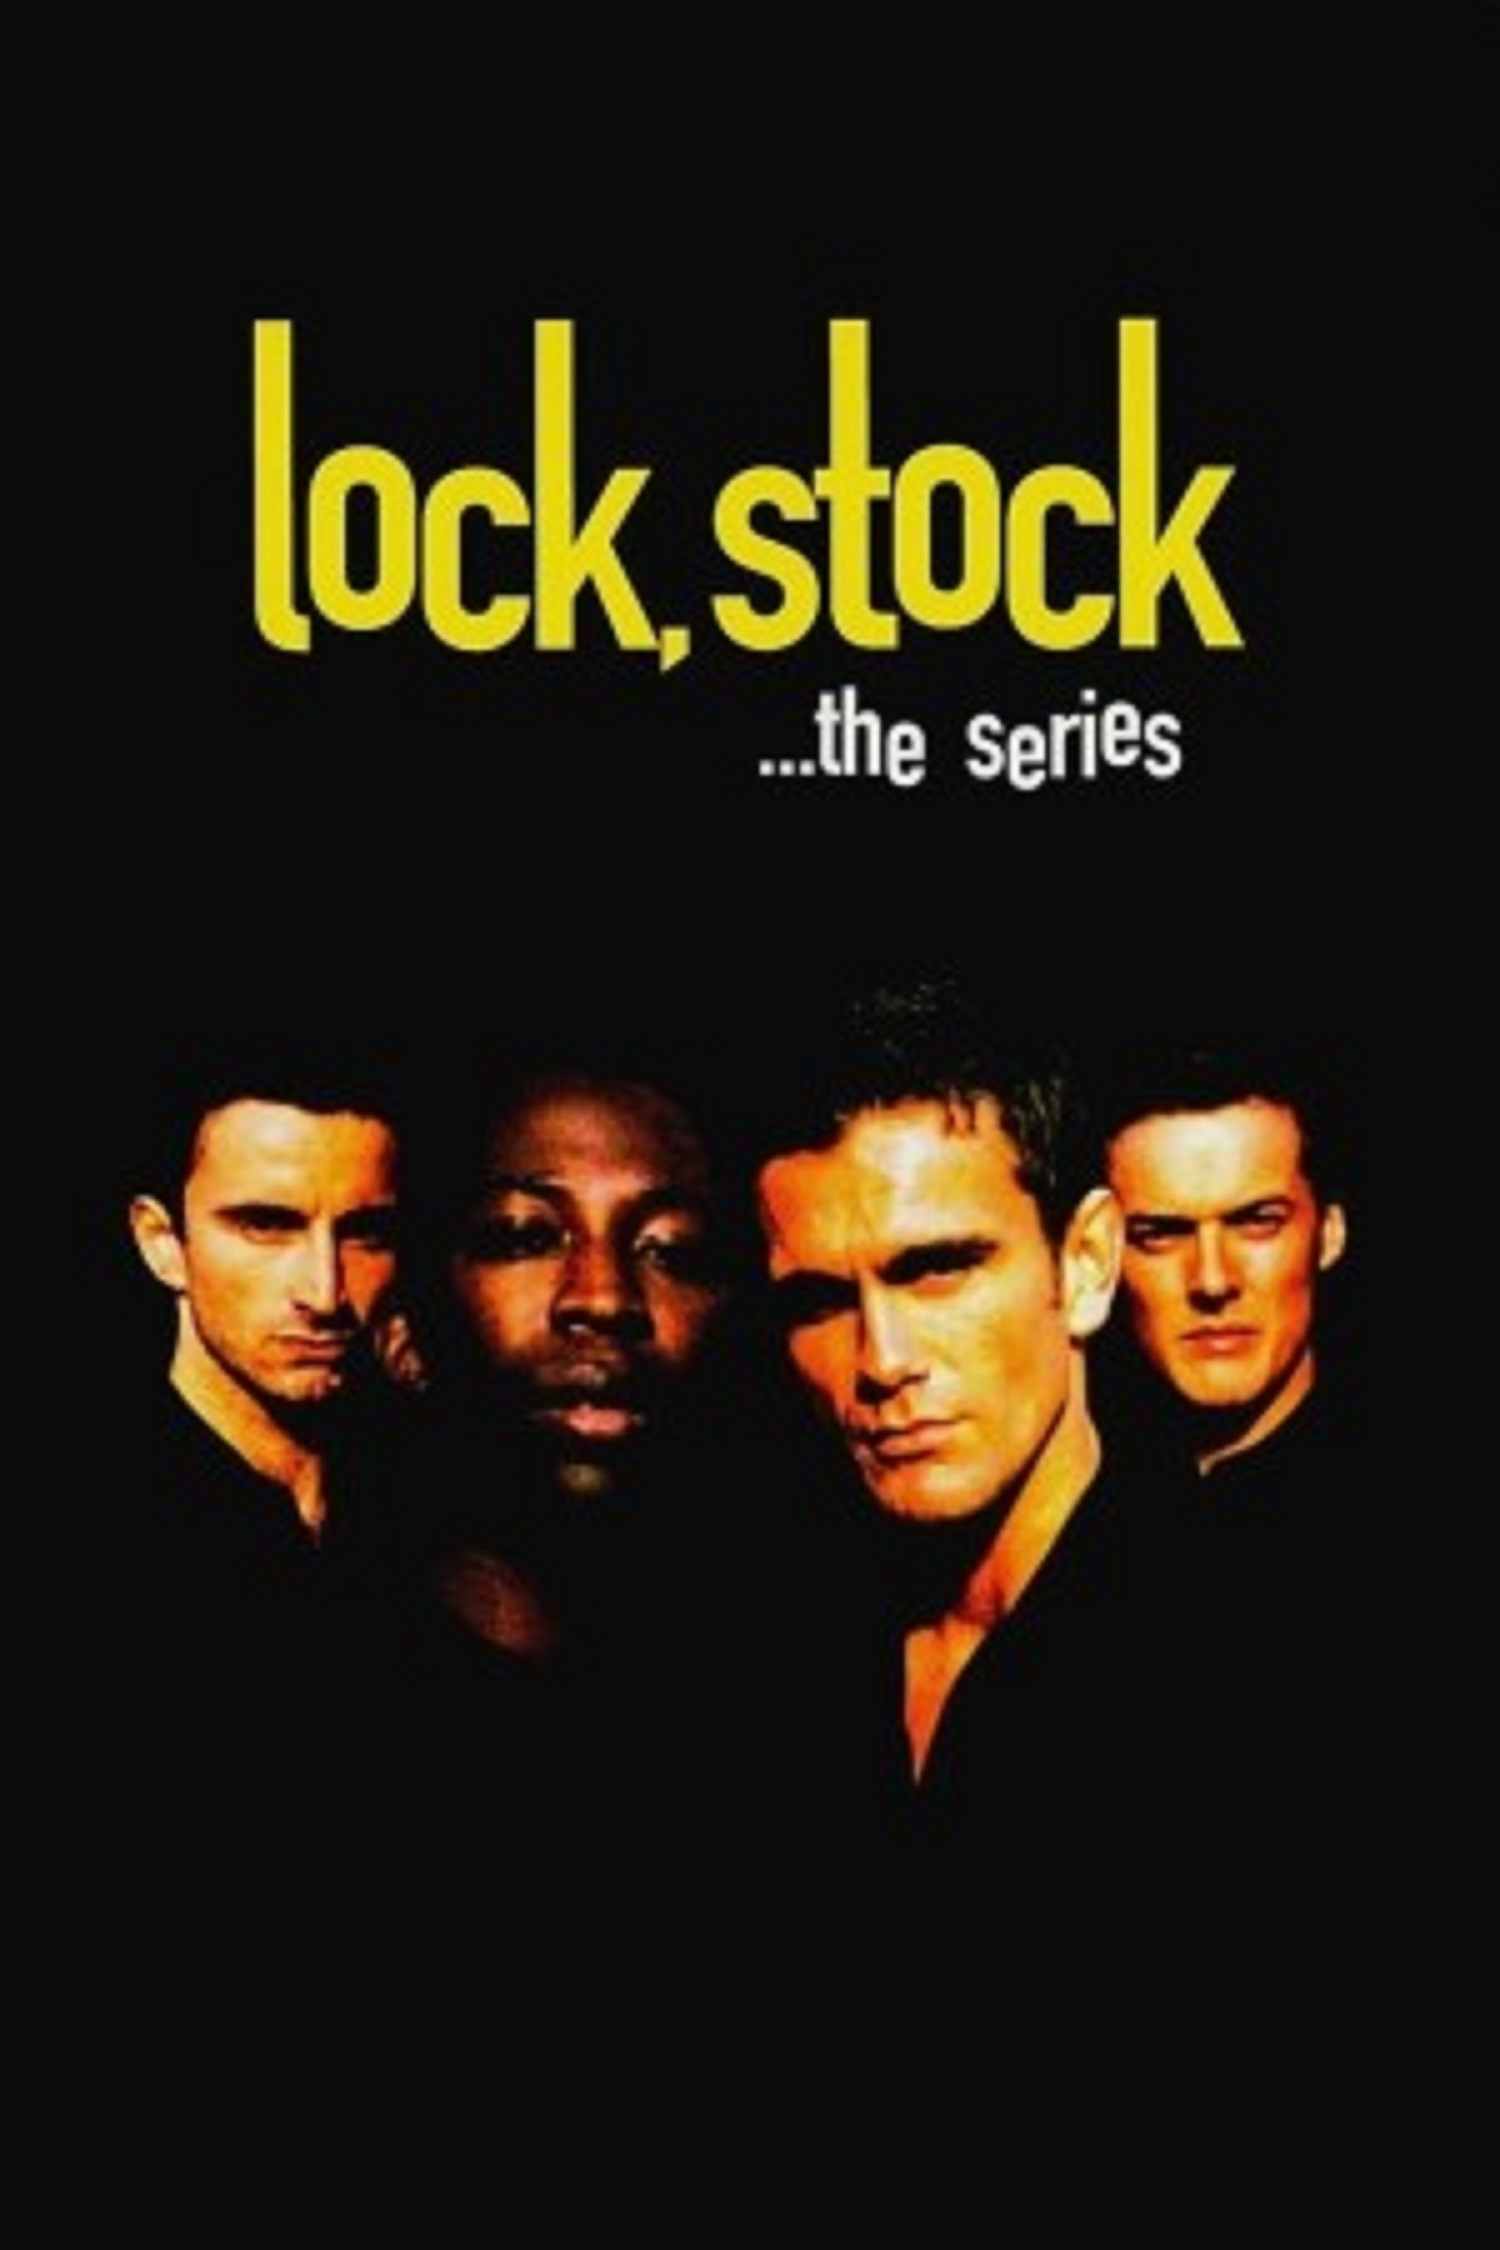 lock stock and two smoking barrels full movie download